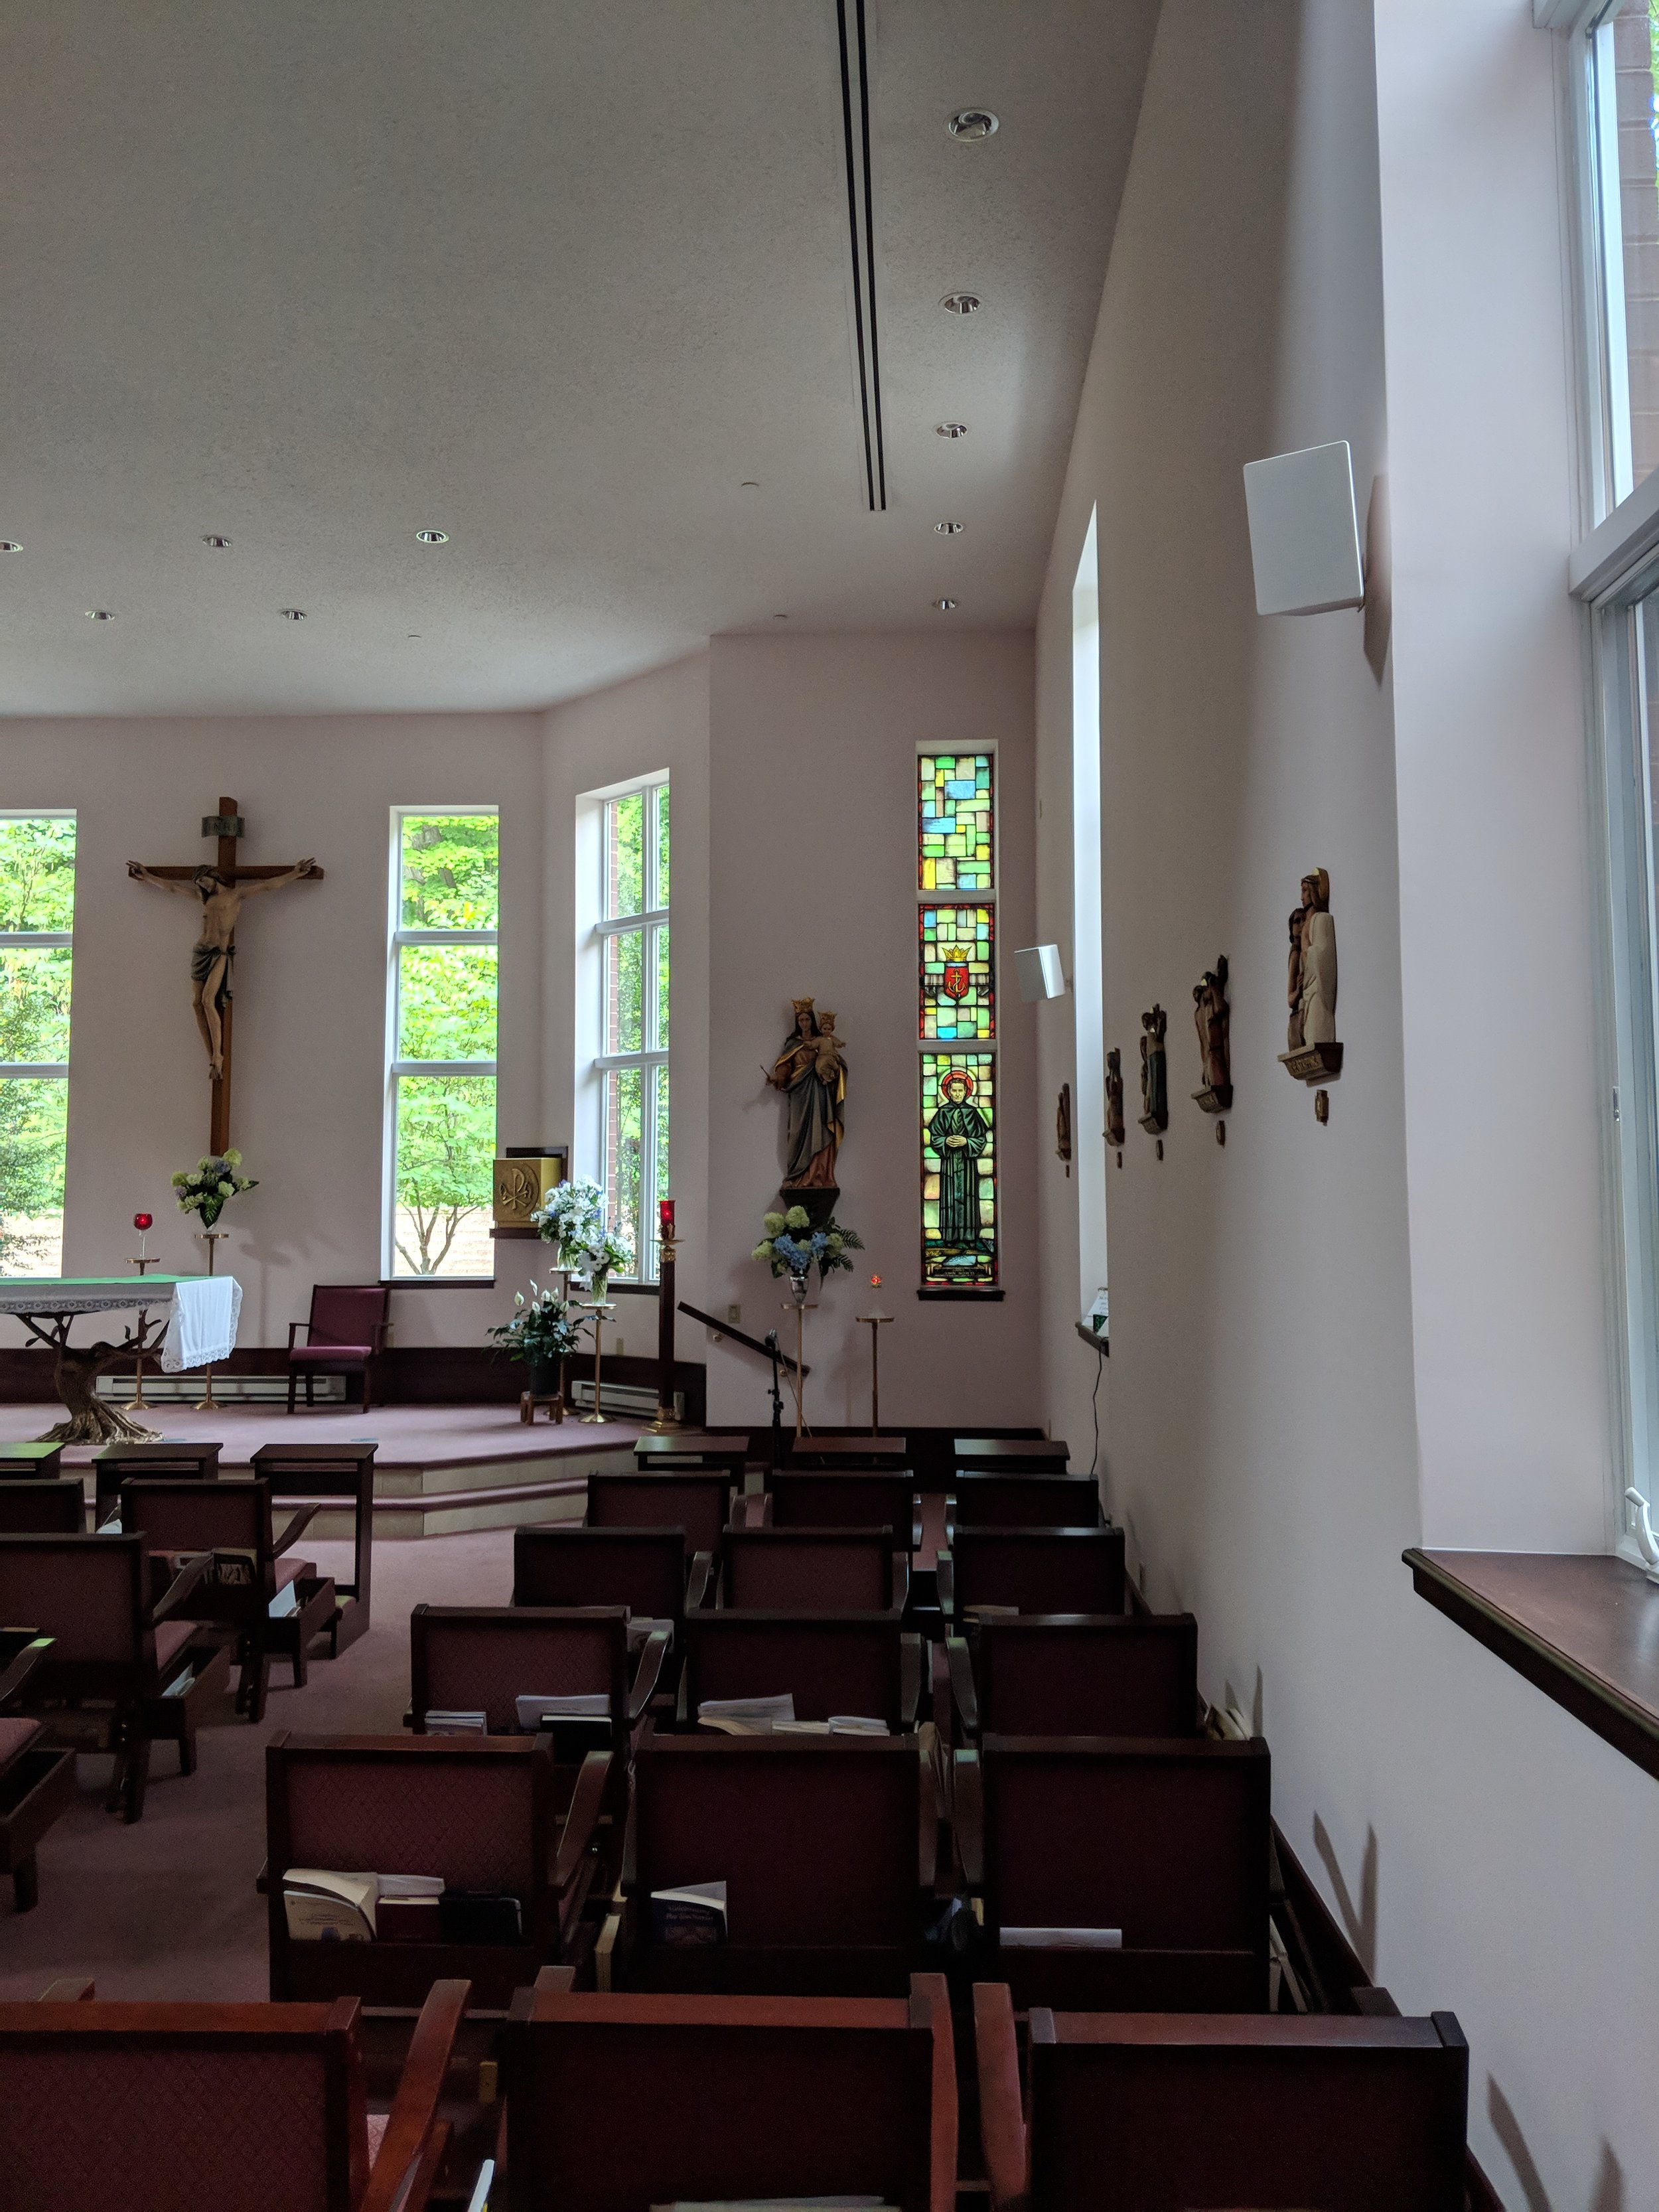 The CAMM DT-200 speakers provide room-filling sound in the chapel.